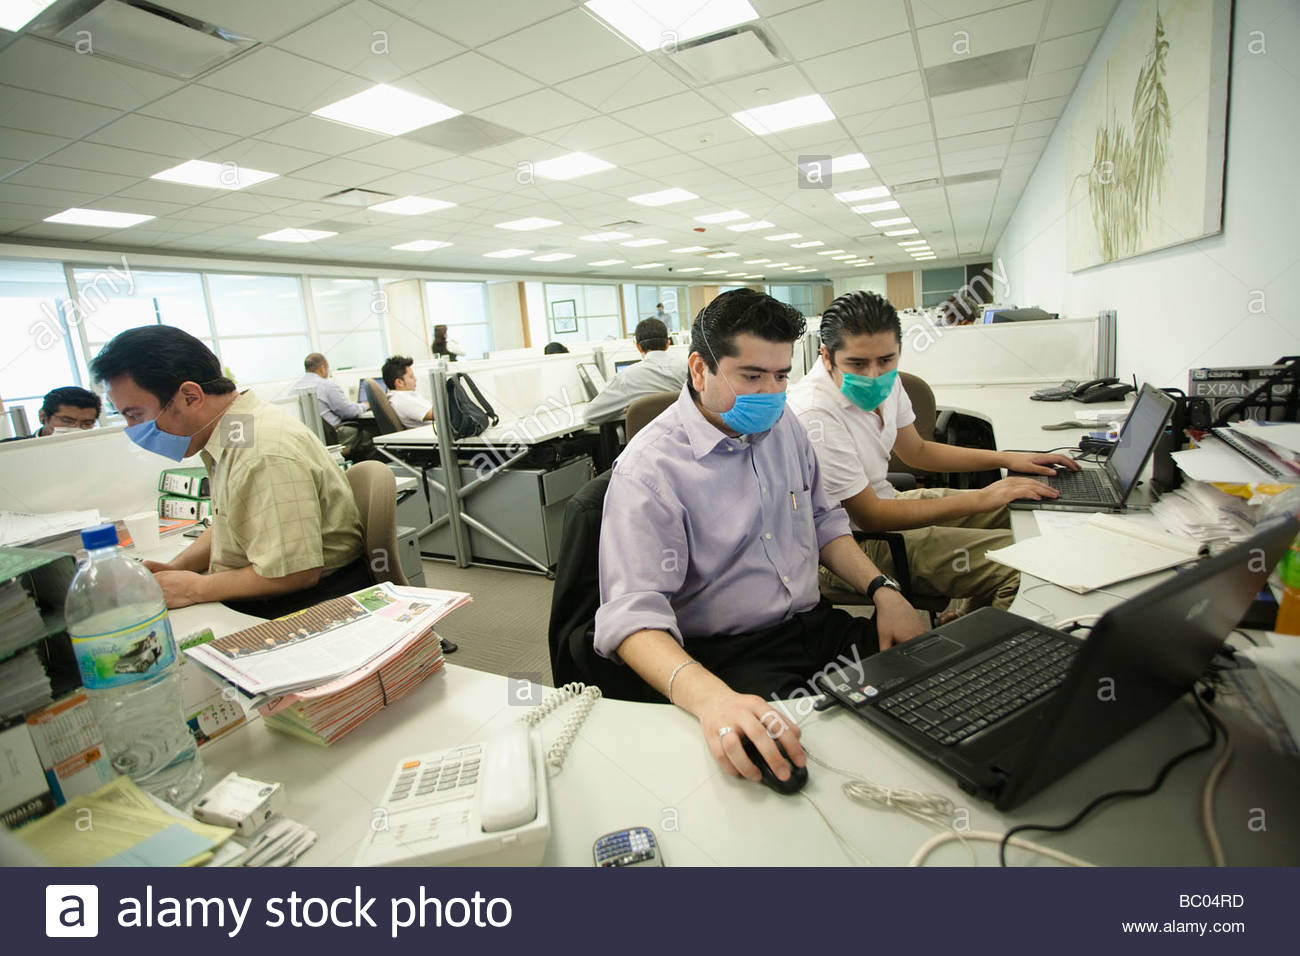 some-people-work-at-their-computers-wearing-masks-inside-an-office-BC04RD.jpg